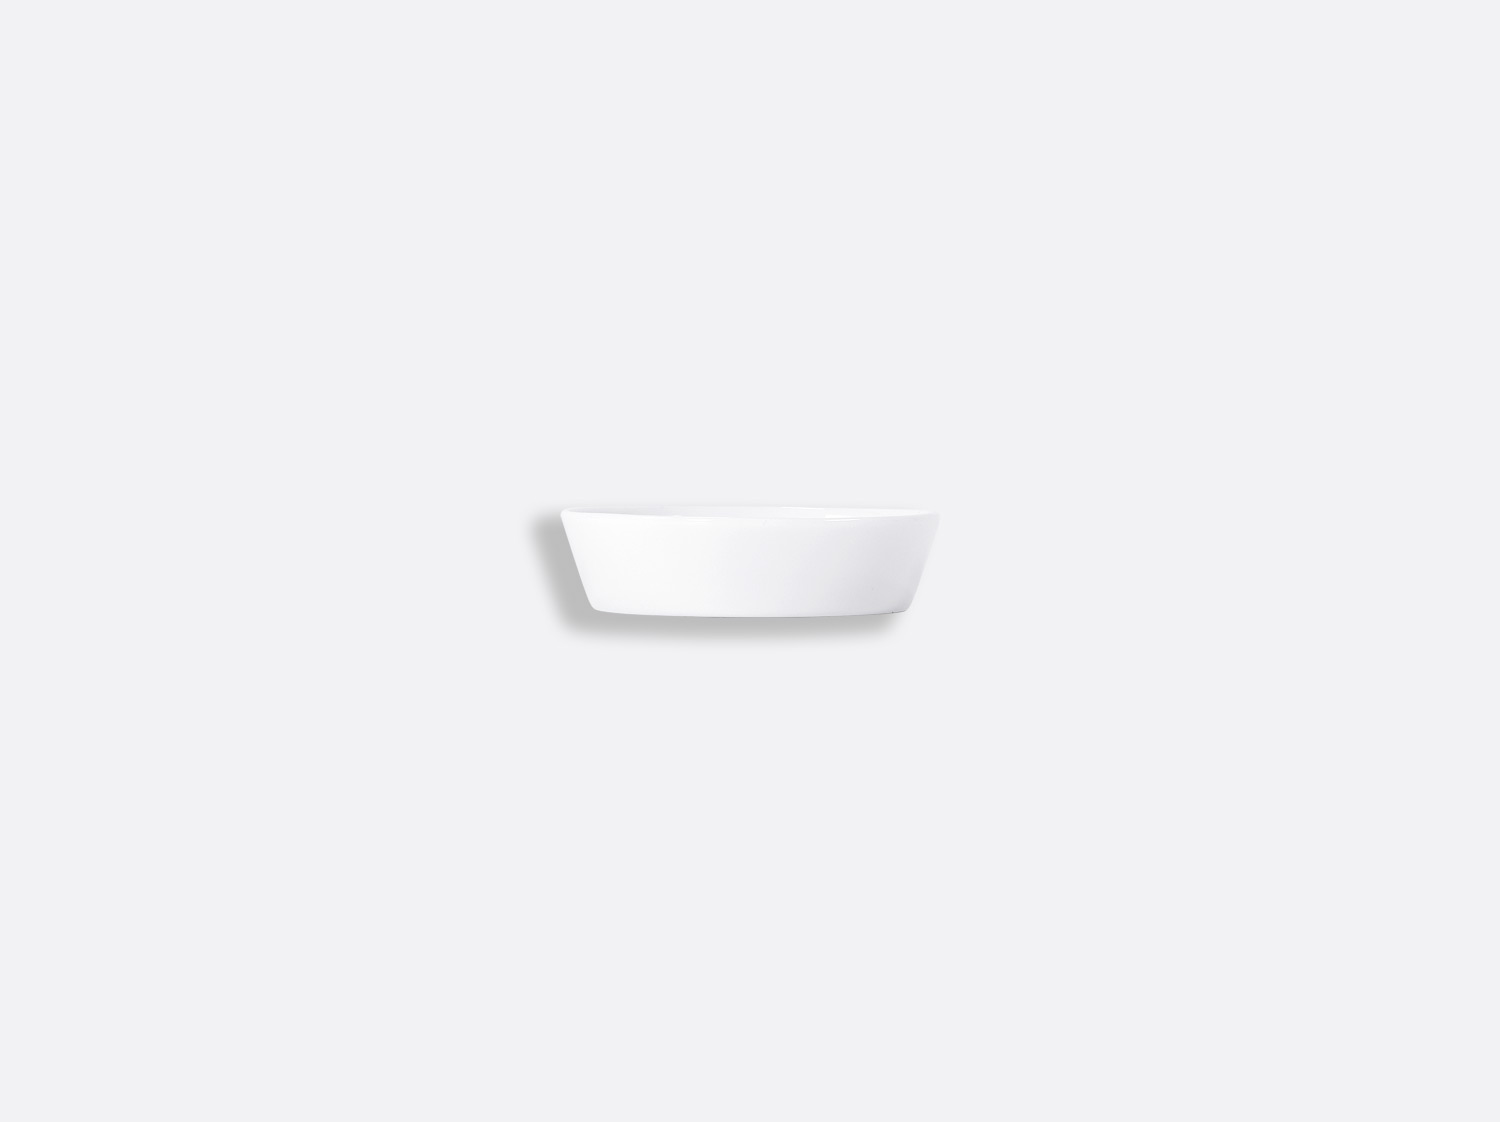 China Stackable saucer 8 cm of the collection Fantaisies blanches | Bernardaud